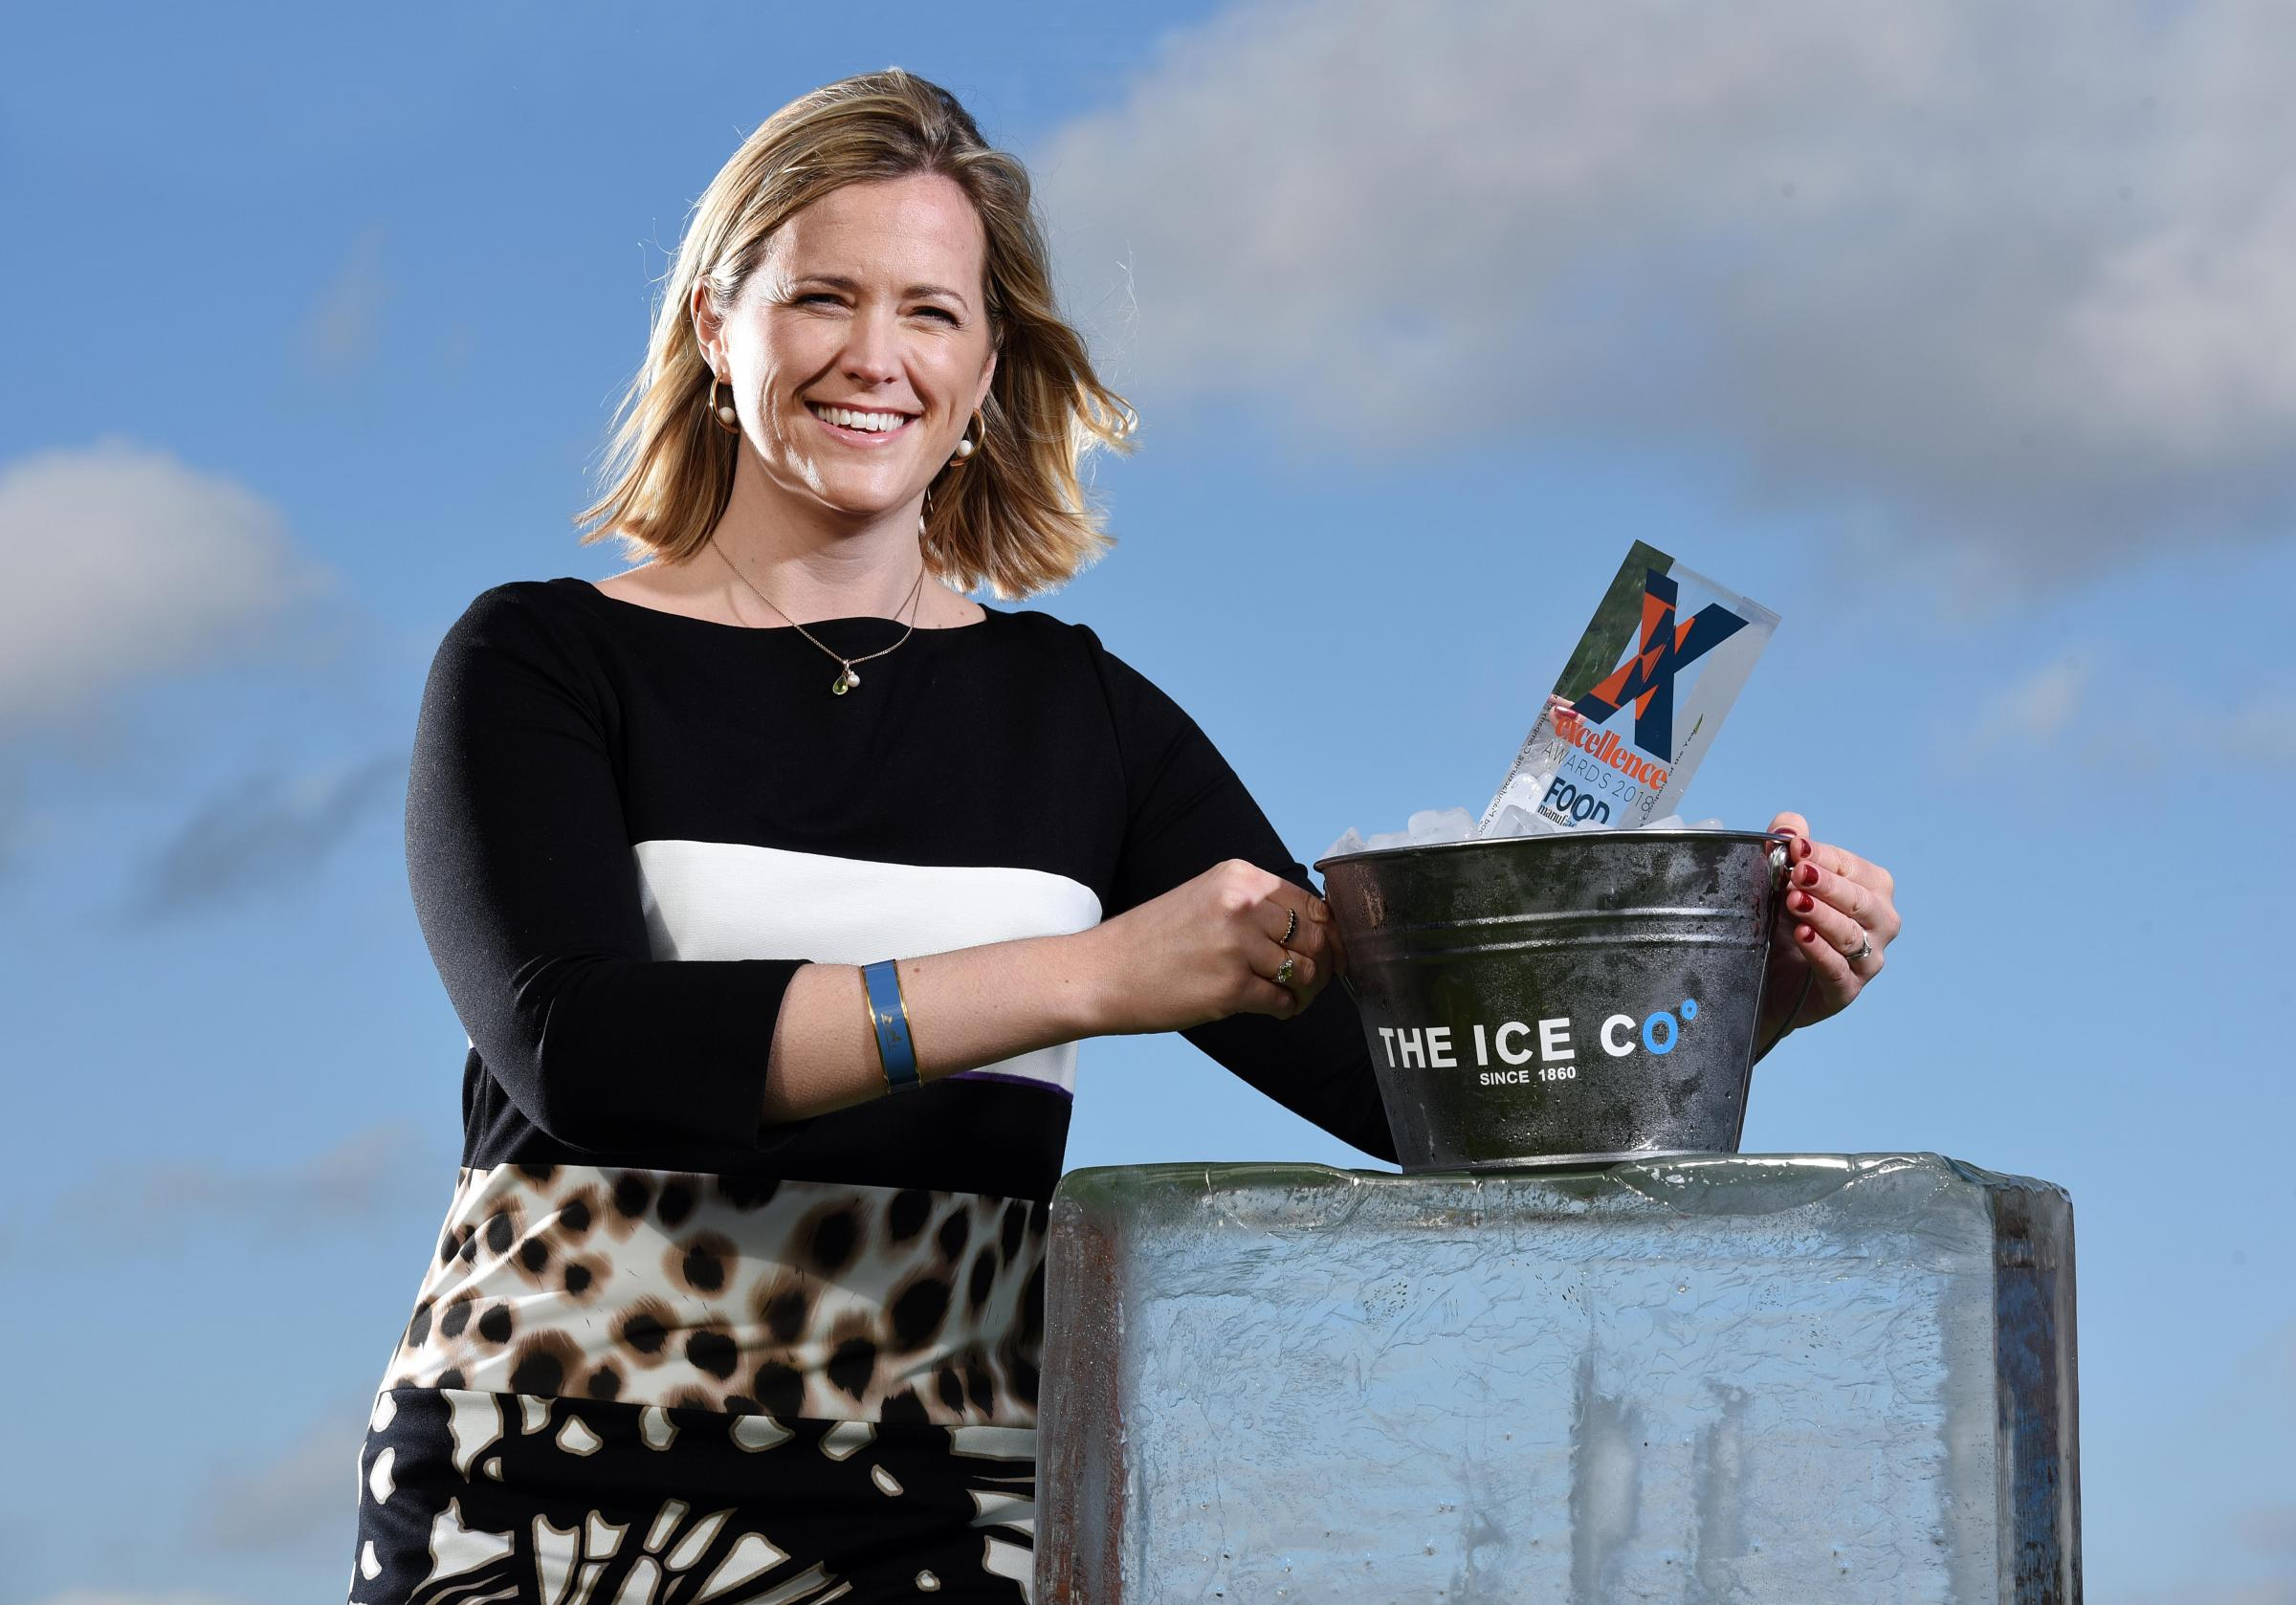 Polly Metcalfe, managing director of The Ice Co